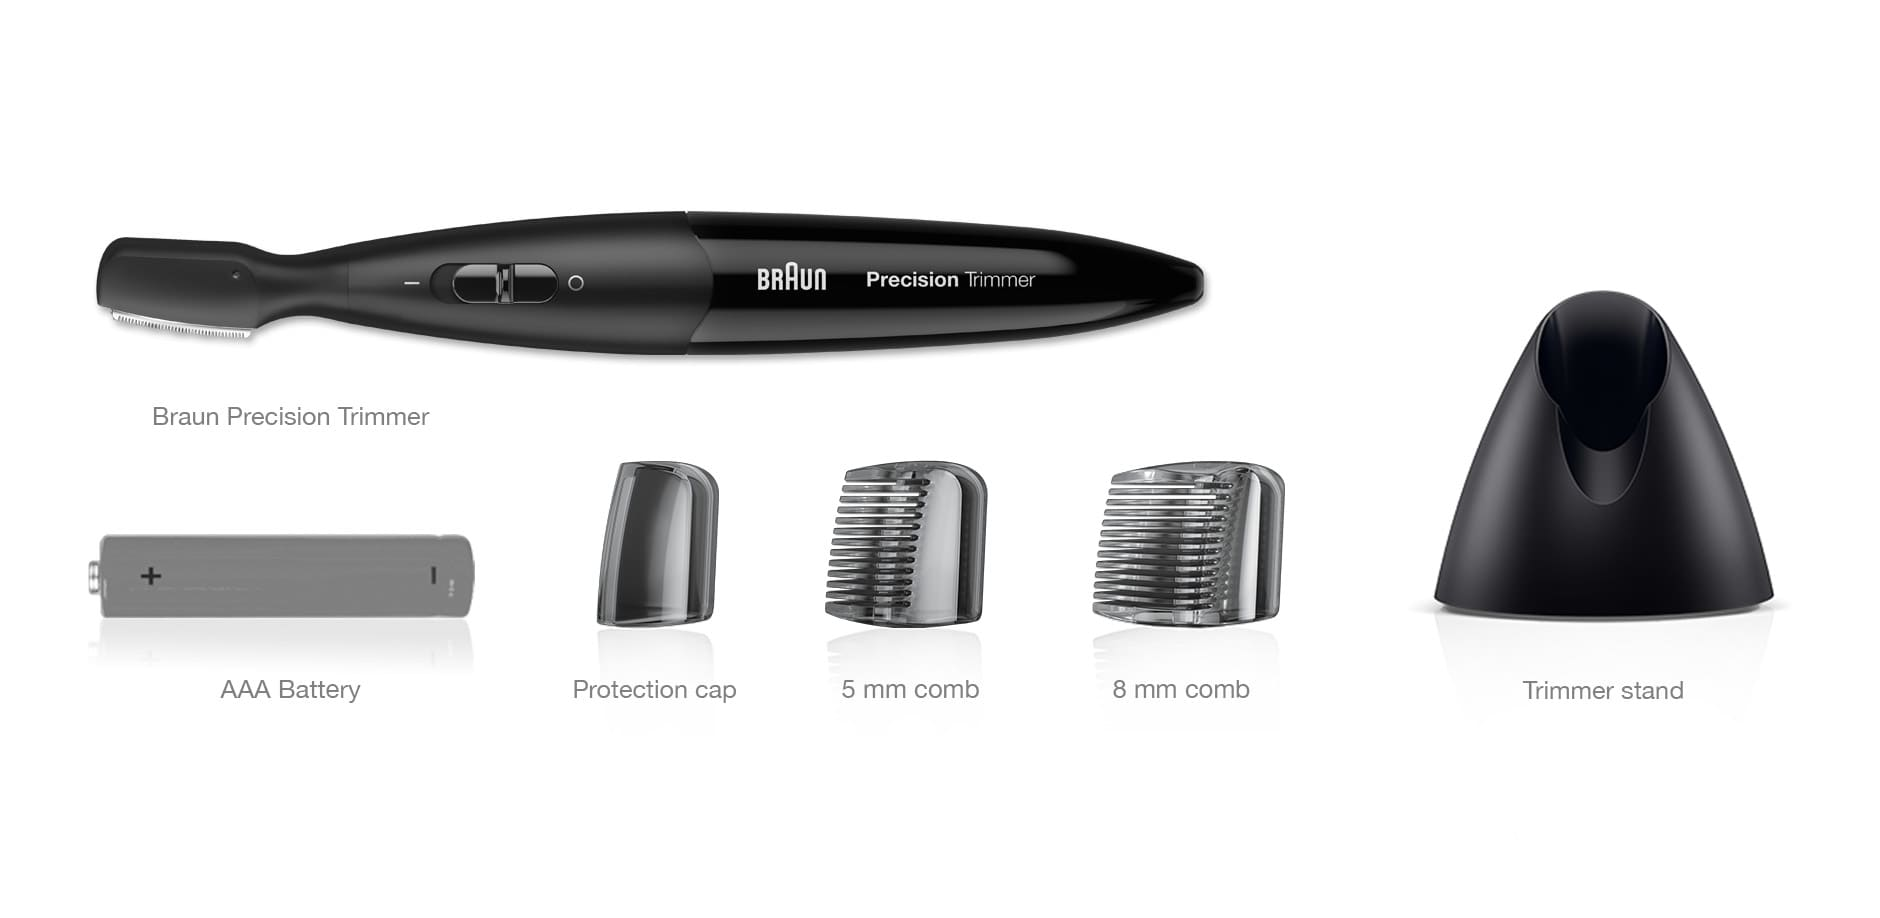 Precision trimmer